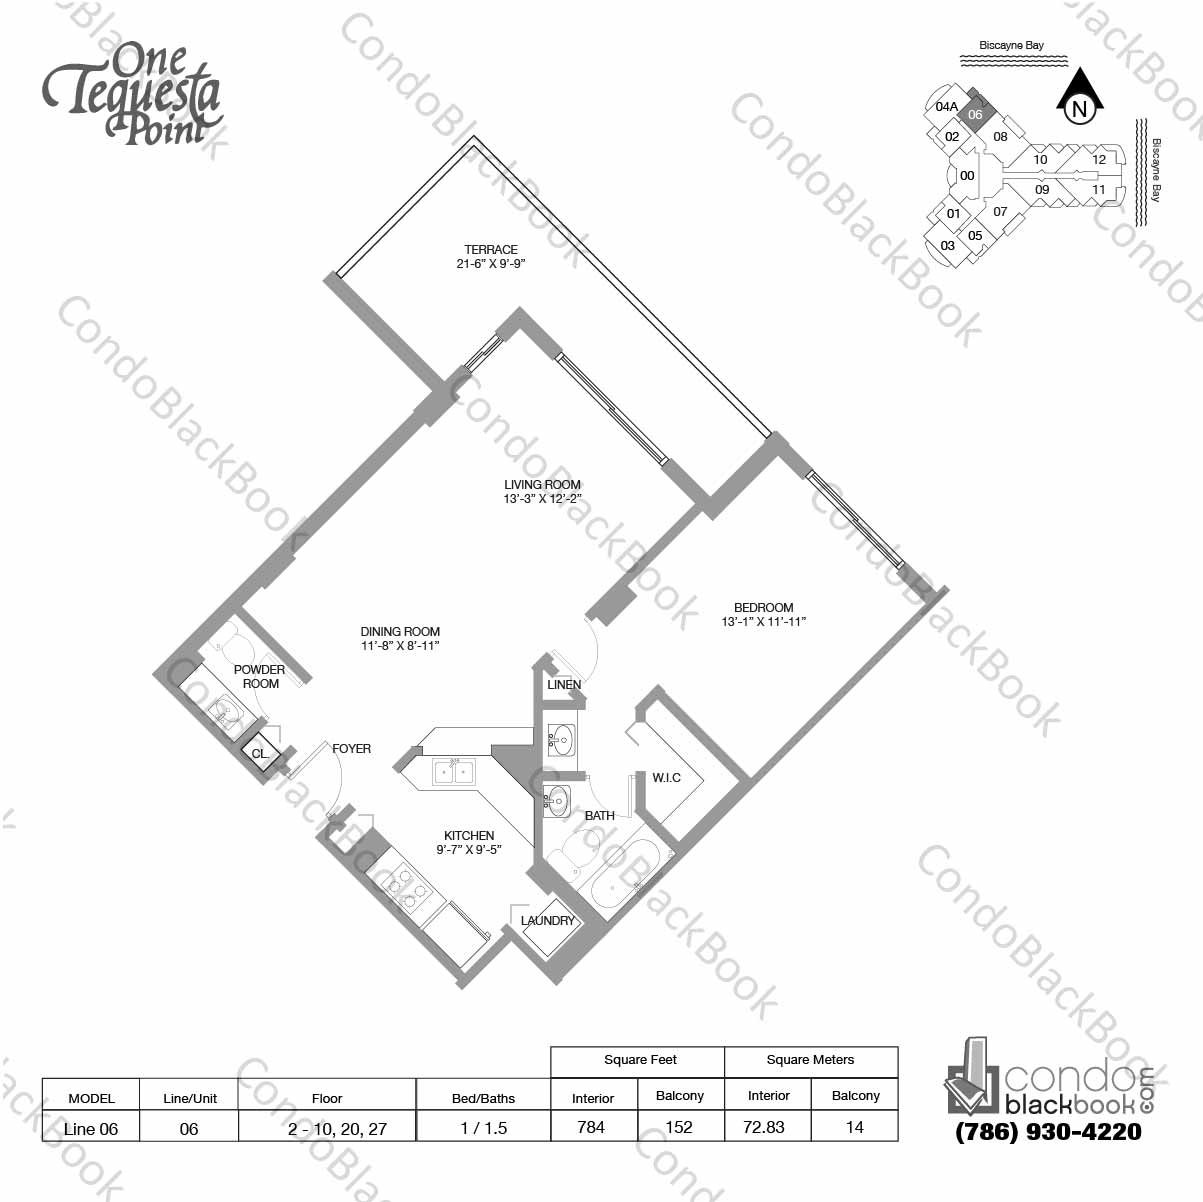 Floor plan for One Tequesta Point Brickell Key Miami, model Line 06, line 06,  1 /1.5 bedrooms, 784 sq ft